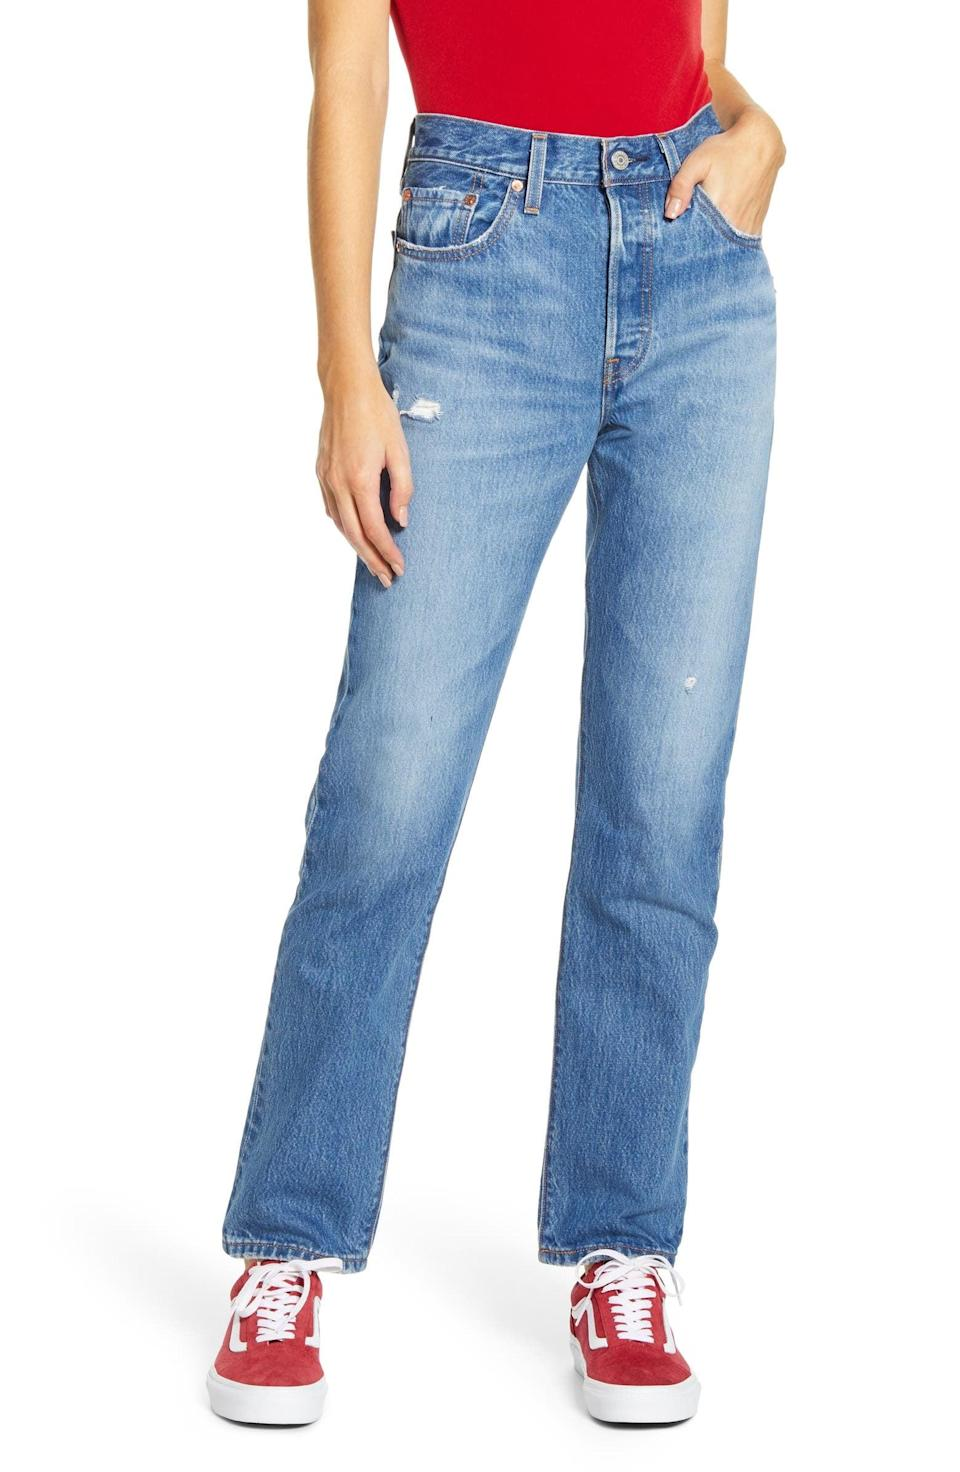 <p>These iconic <span>Levi's 501 High Waist Straight Leg Jeans</span> ($98) are exactly what we want to be wearing. If you're looking for a classic fit, these are it.</p>